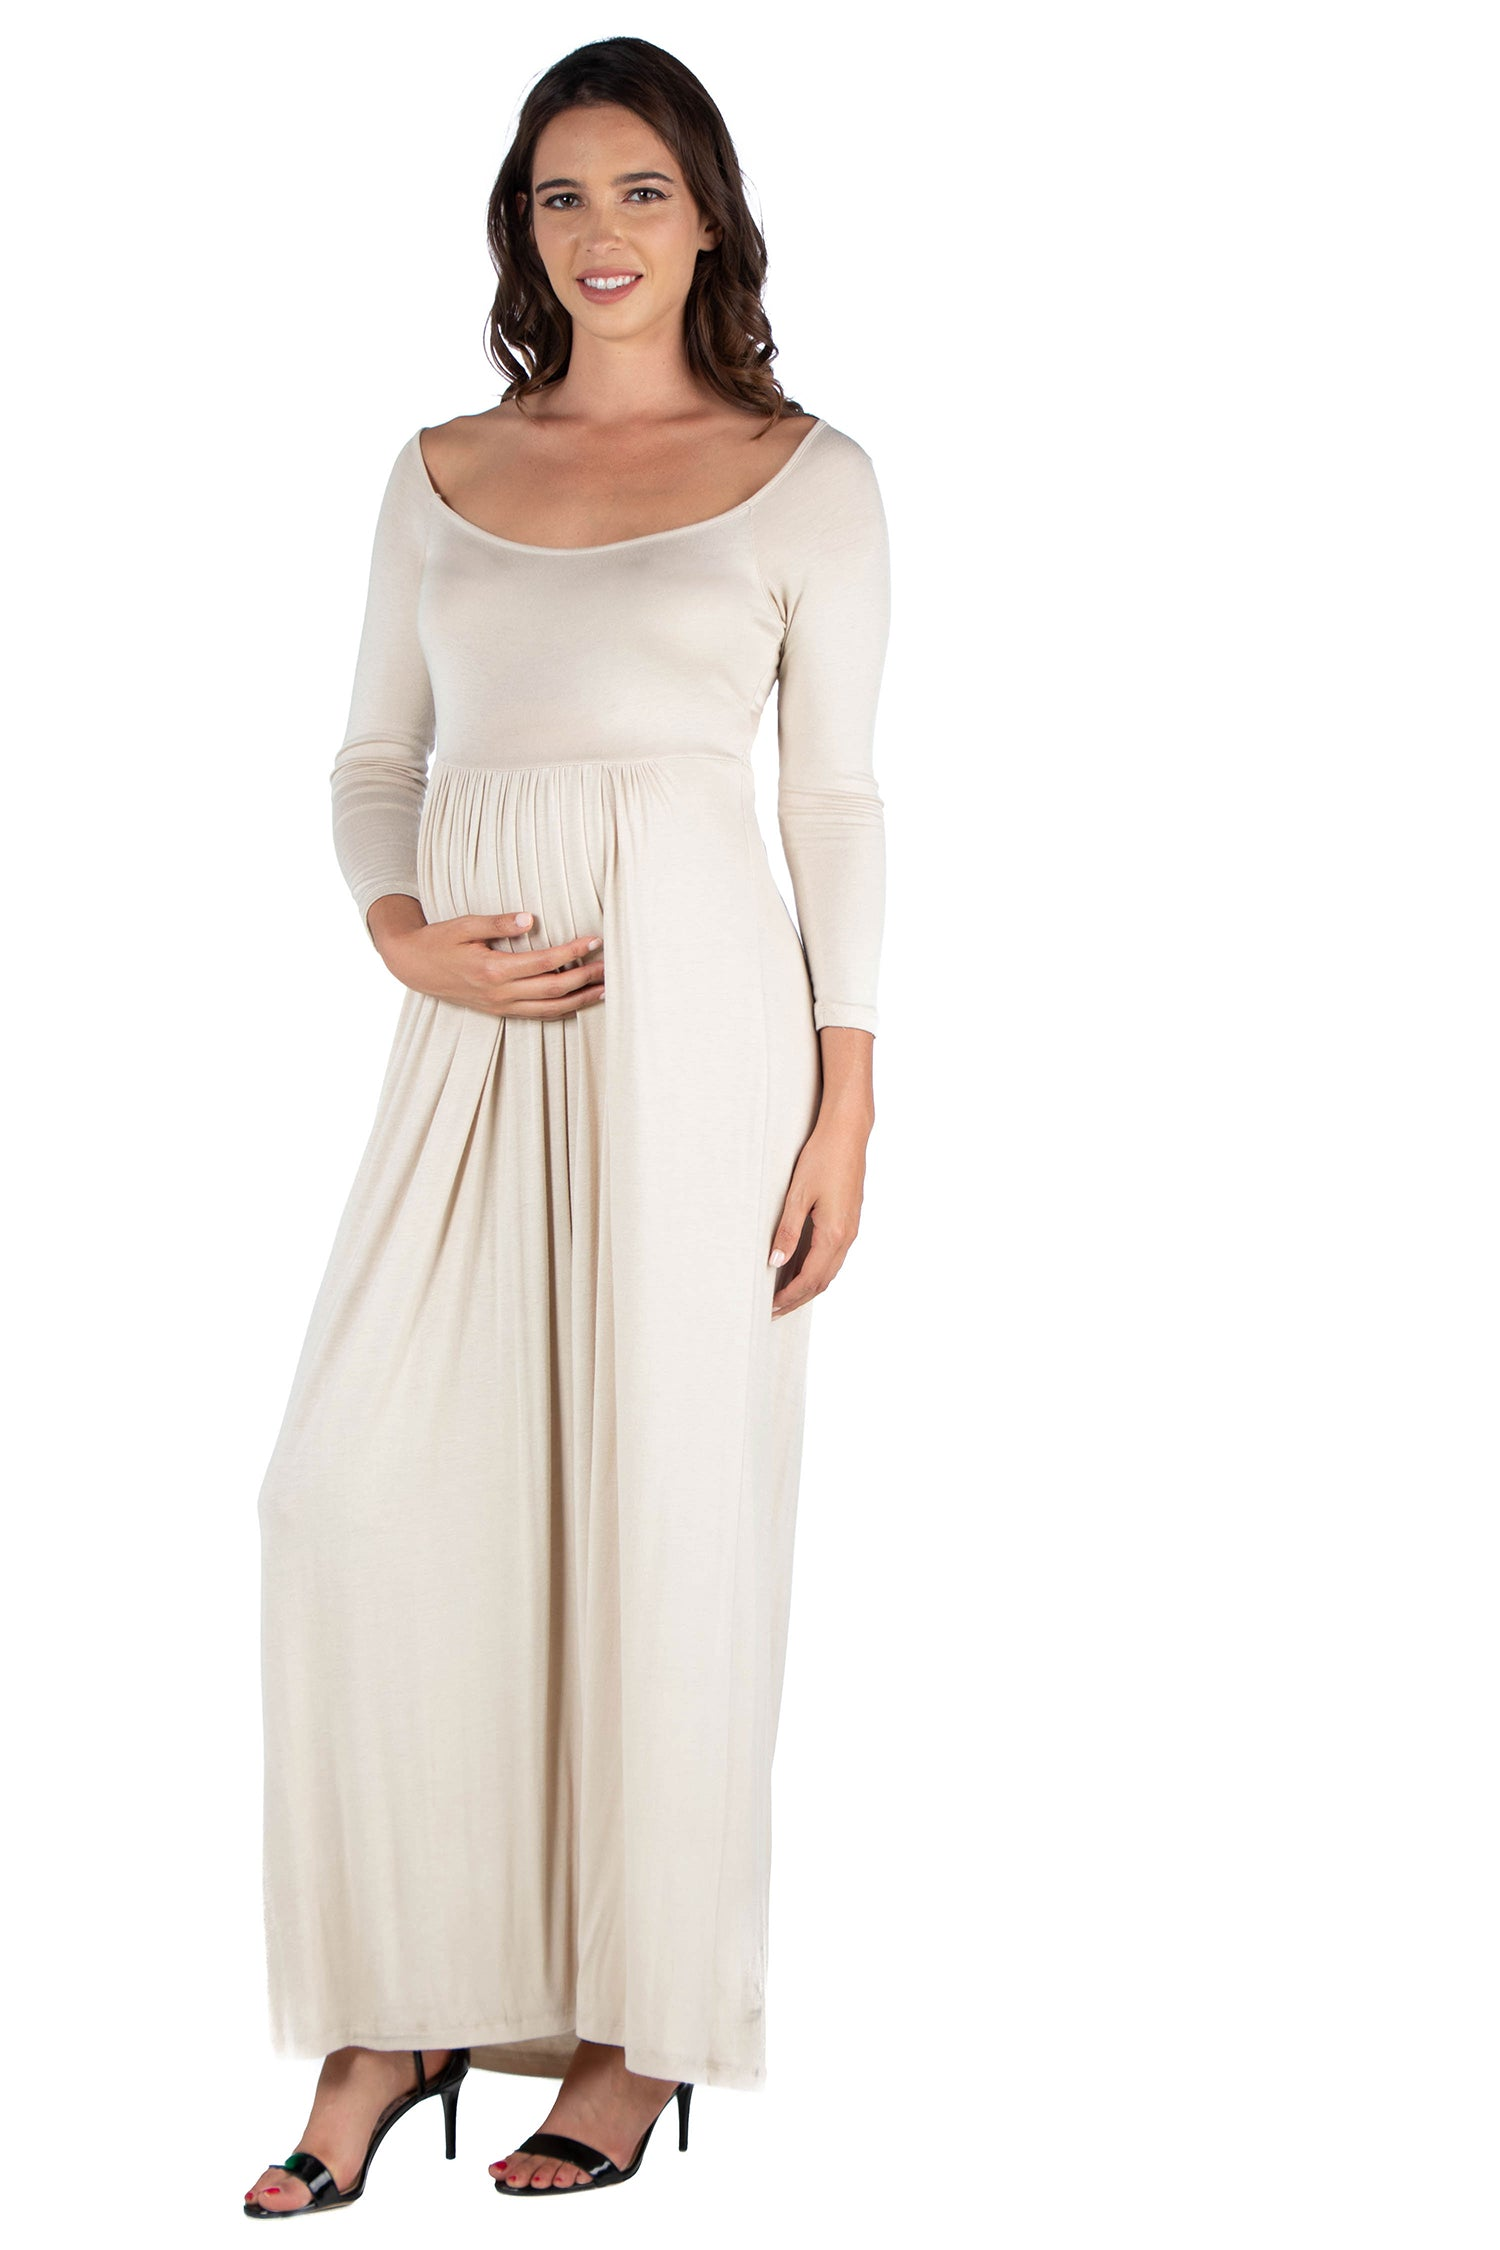 24seven Comfort Apparel Empire Waist Long Sleeve Maternity Maxi Dress-DRESSES-24Seven Comfort Apparel-IVORY-1X-24/7 Comfort Apparel